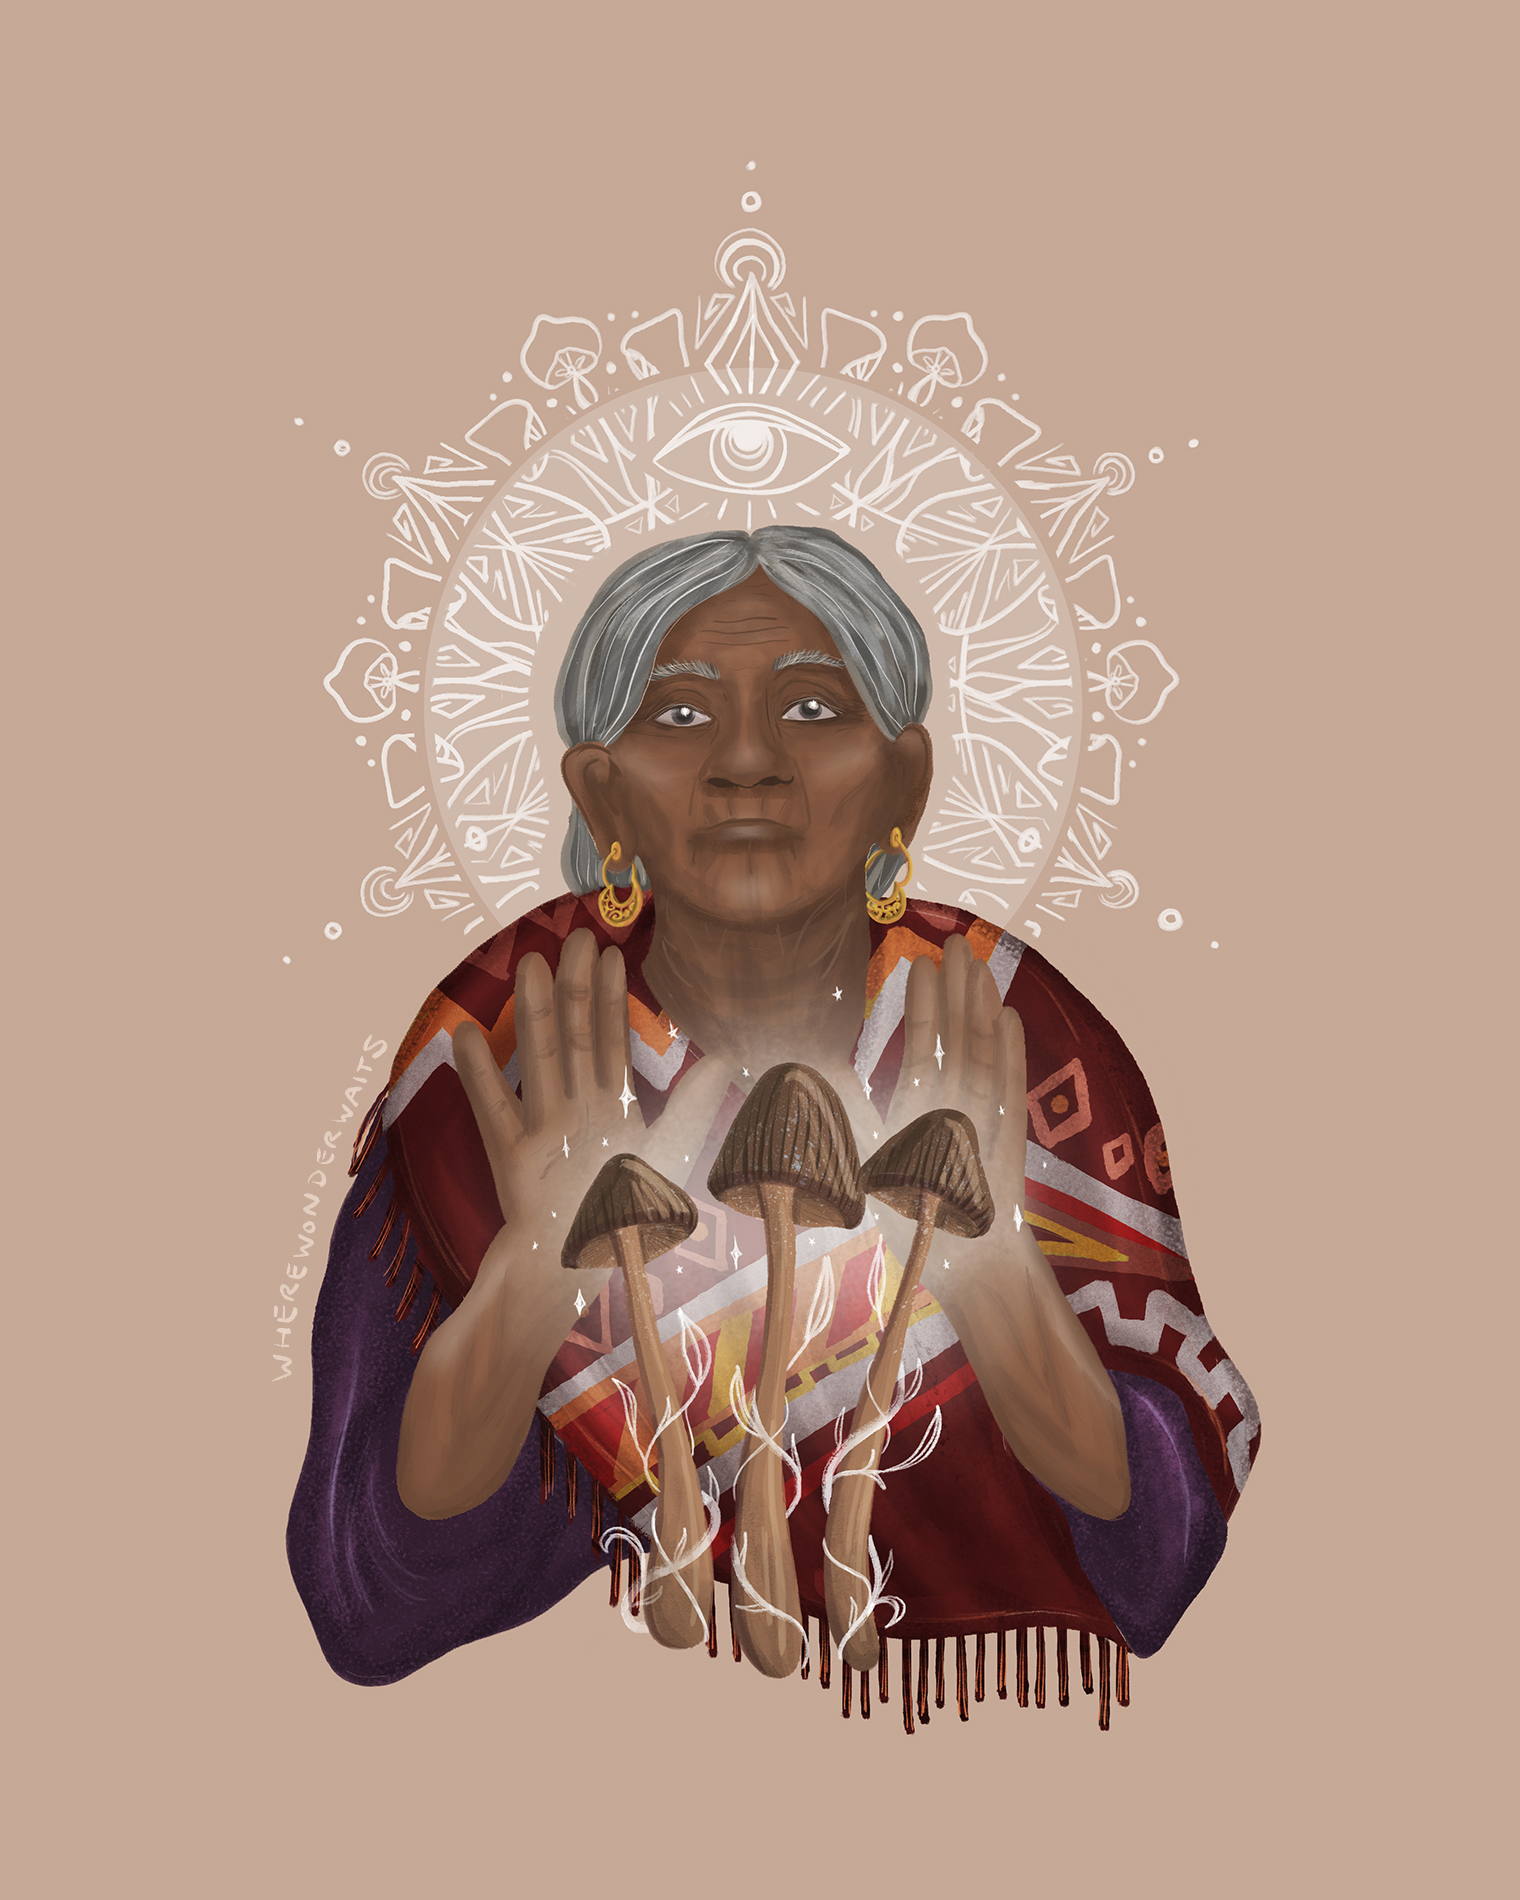 This illustration depicts the Mexican shaman Maria Sabina working with magic mushrooms.